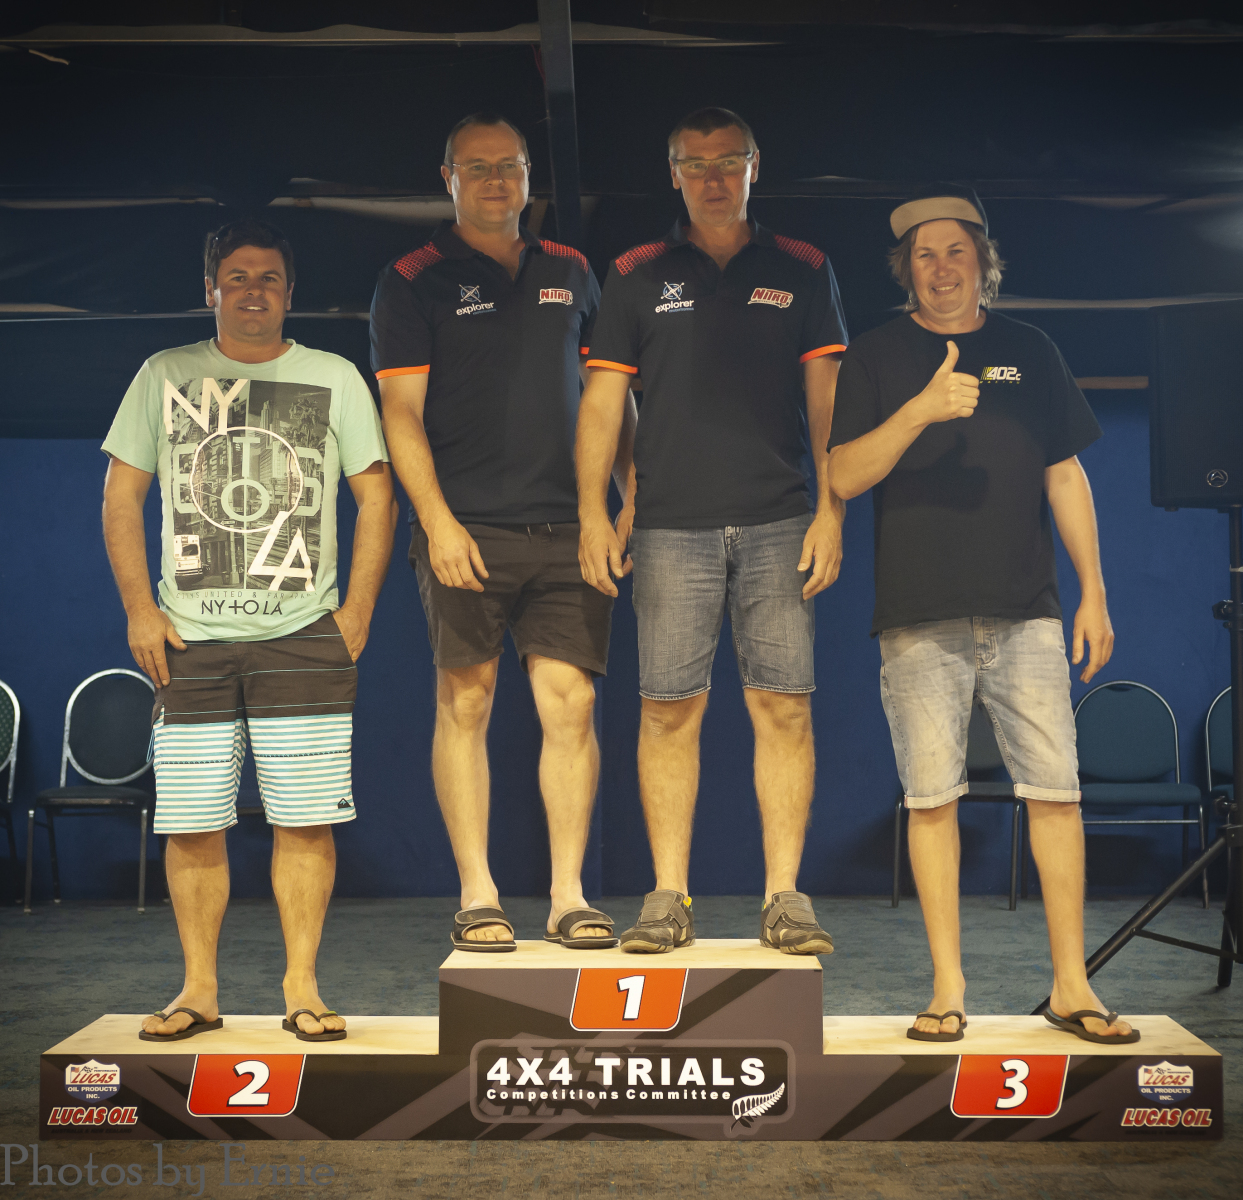 Overall - 2nd Greg McDell, 1st Richard Verner & Neville Mather, 3rd Shayne Towers